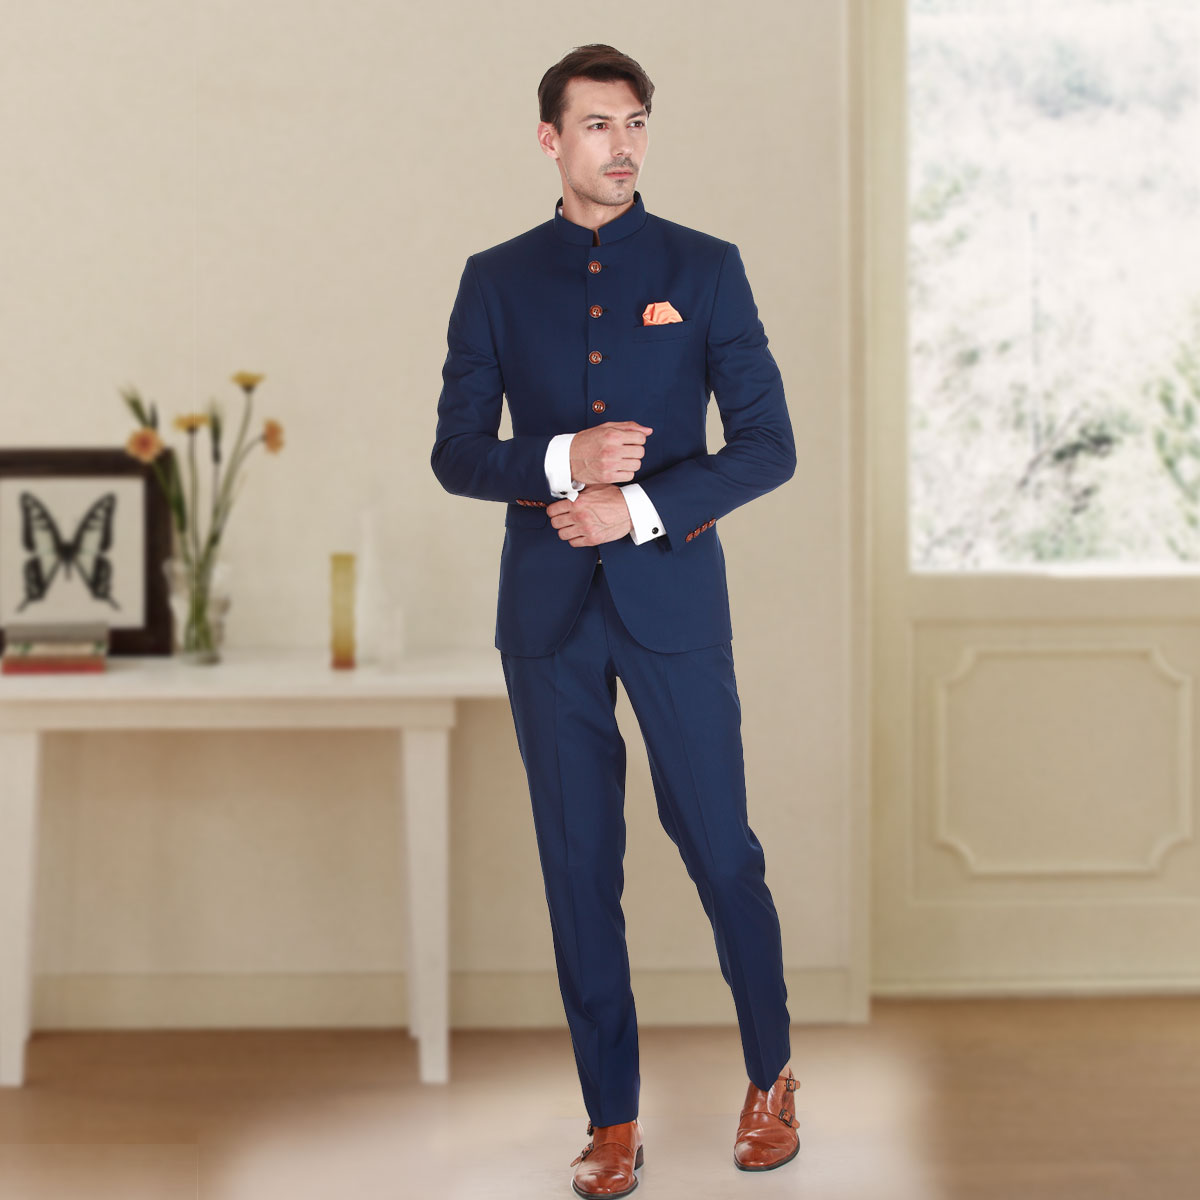 Made To Measure Wedding Suits Made To Measure Wedding Suits new images